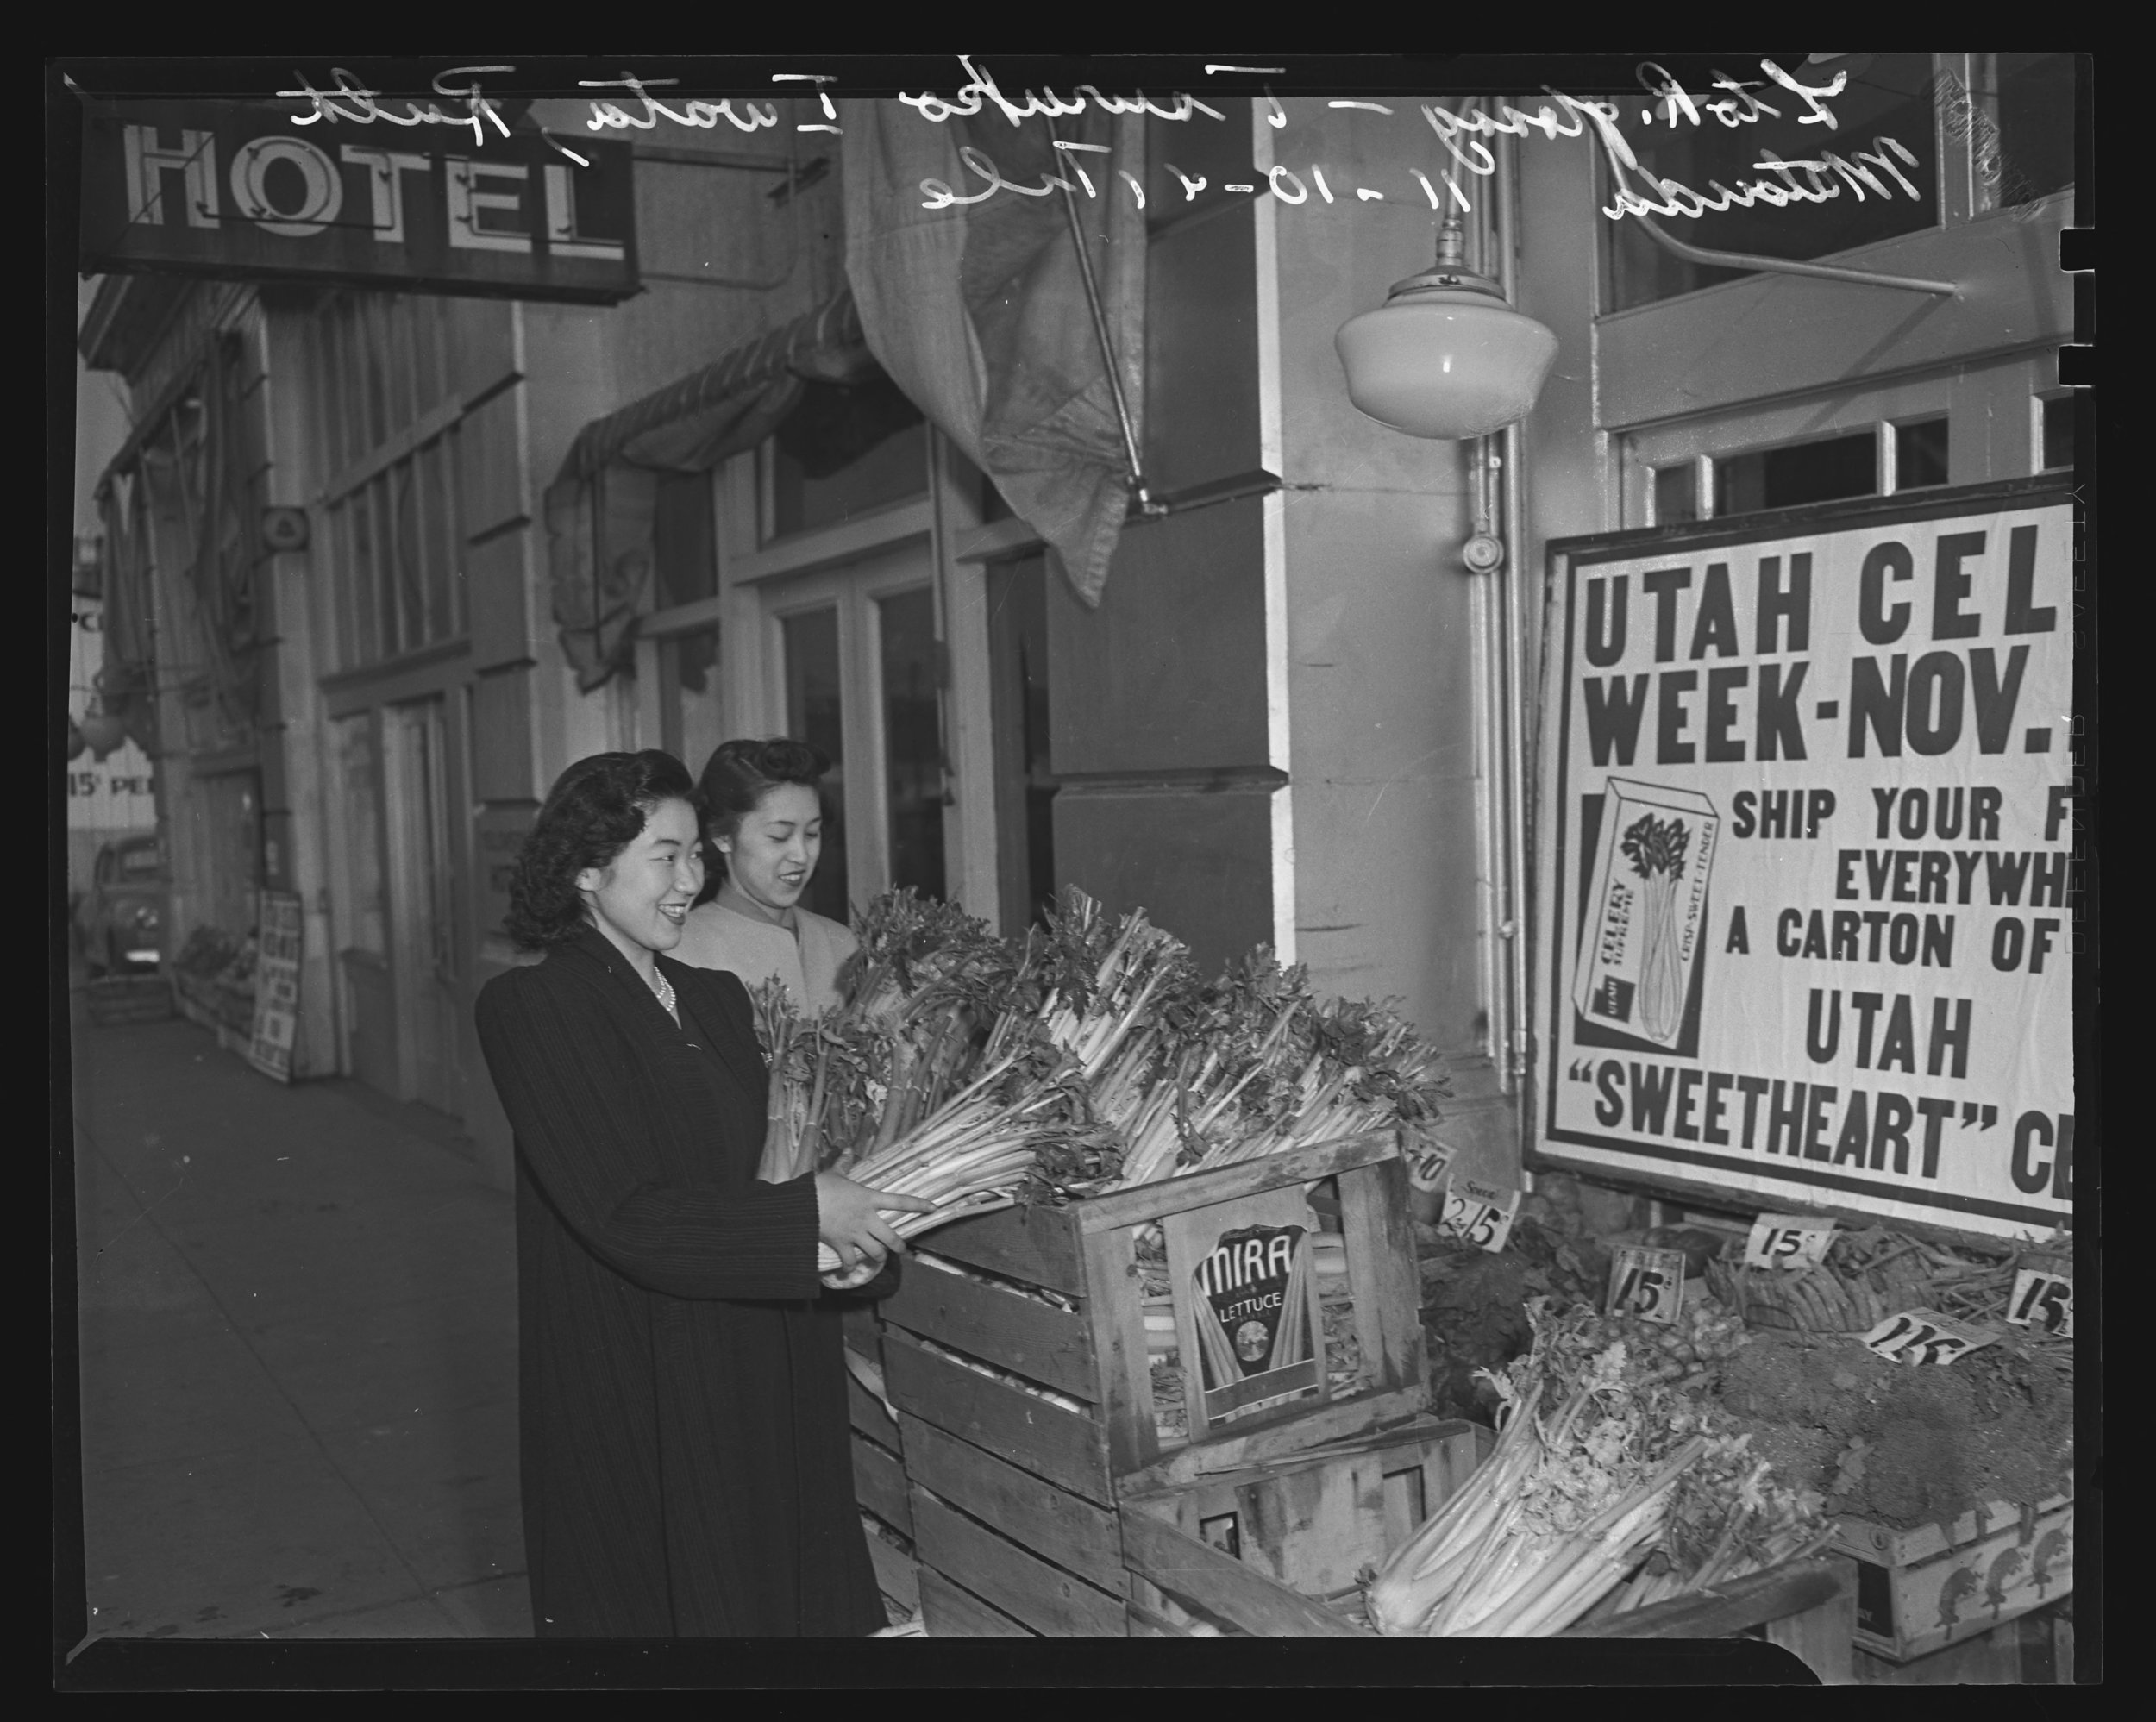 Shoppers Peruse Celery Stalks during Utah Celery Week in this photo published by the  Salt Lake Tribune  in the 1940s.